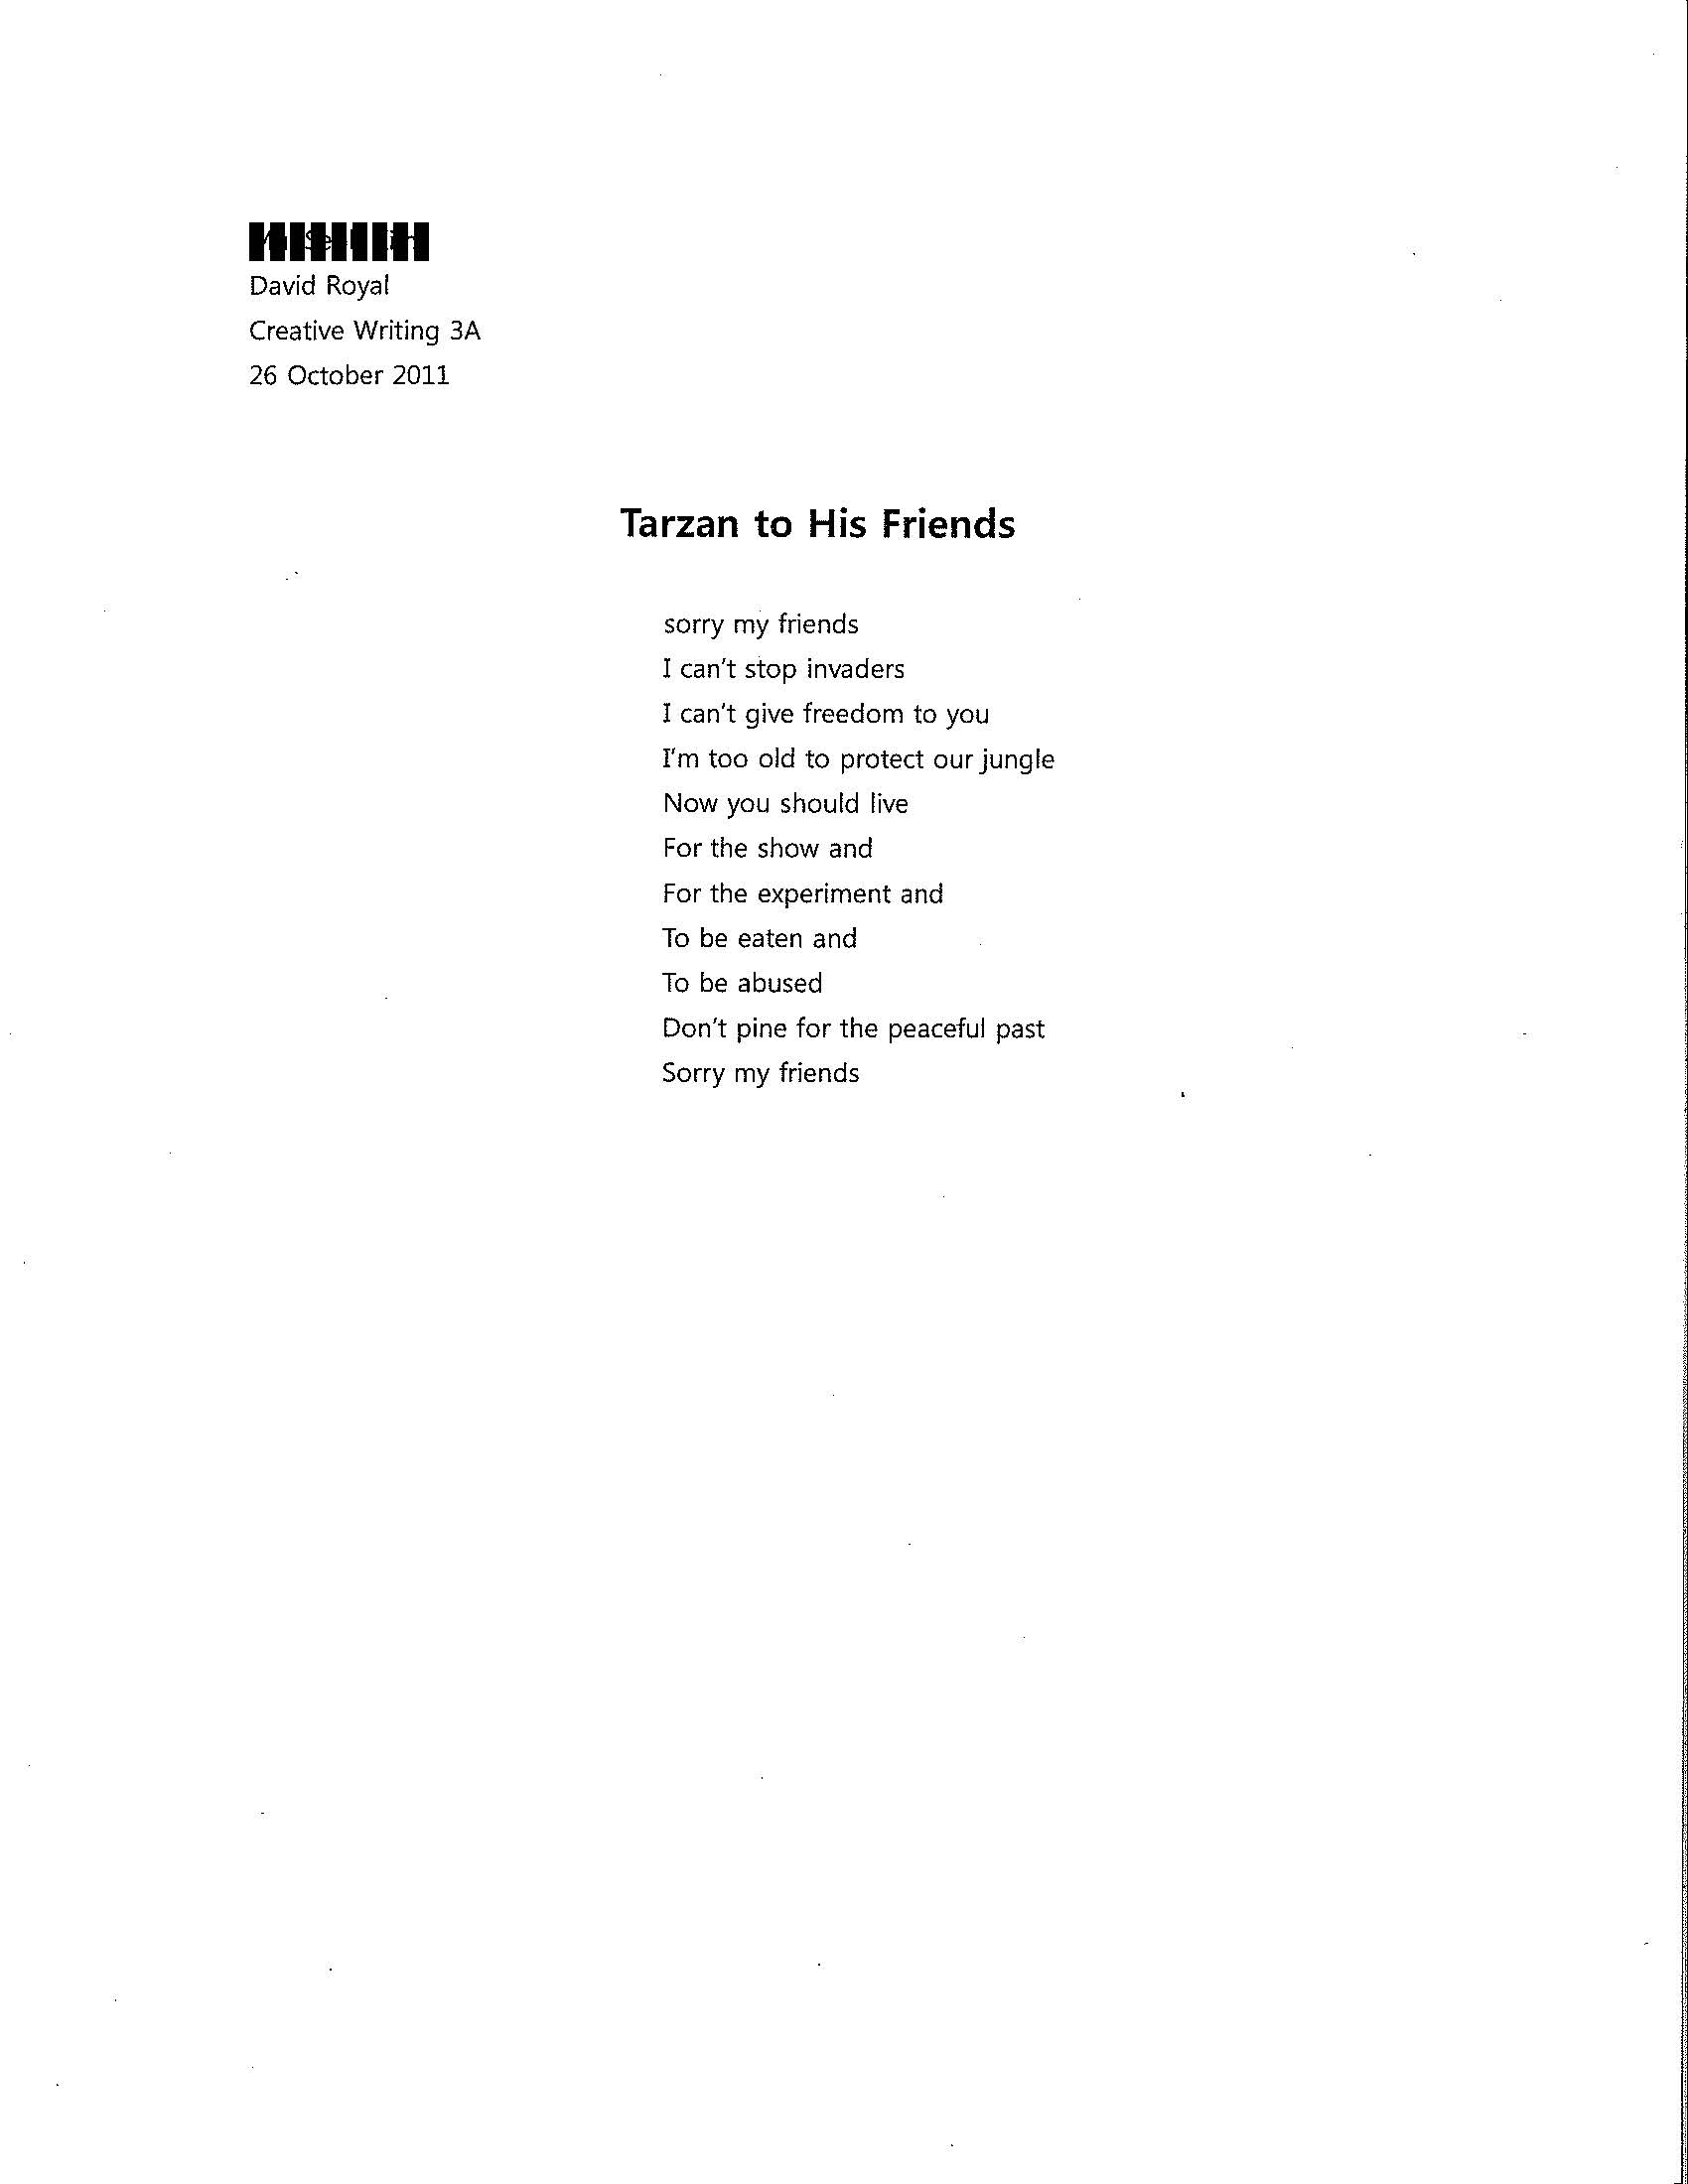 format for poems